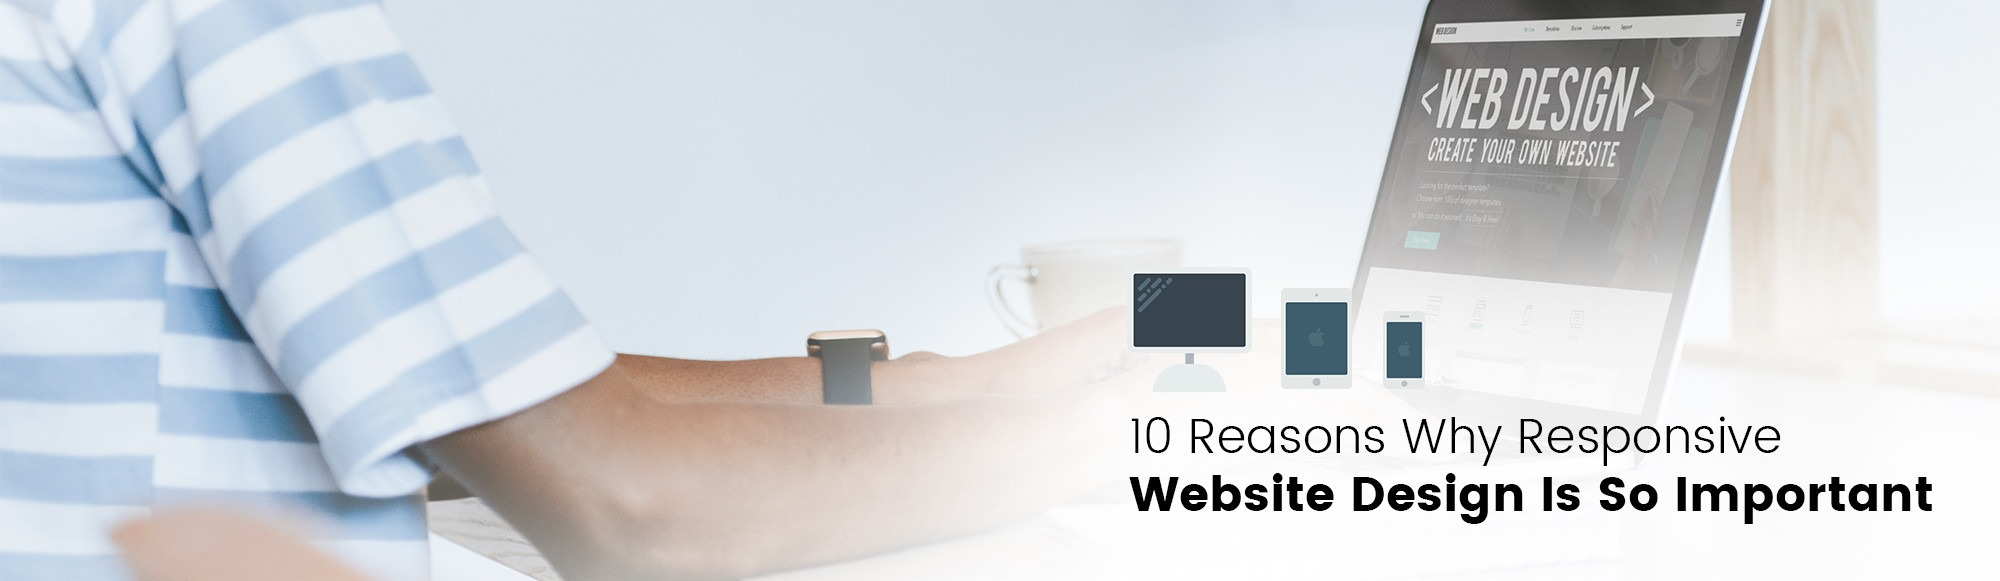 10 reasons why responsive website design is so important